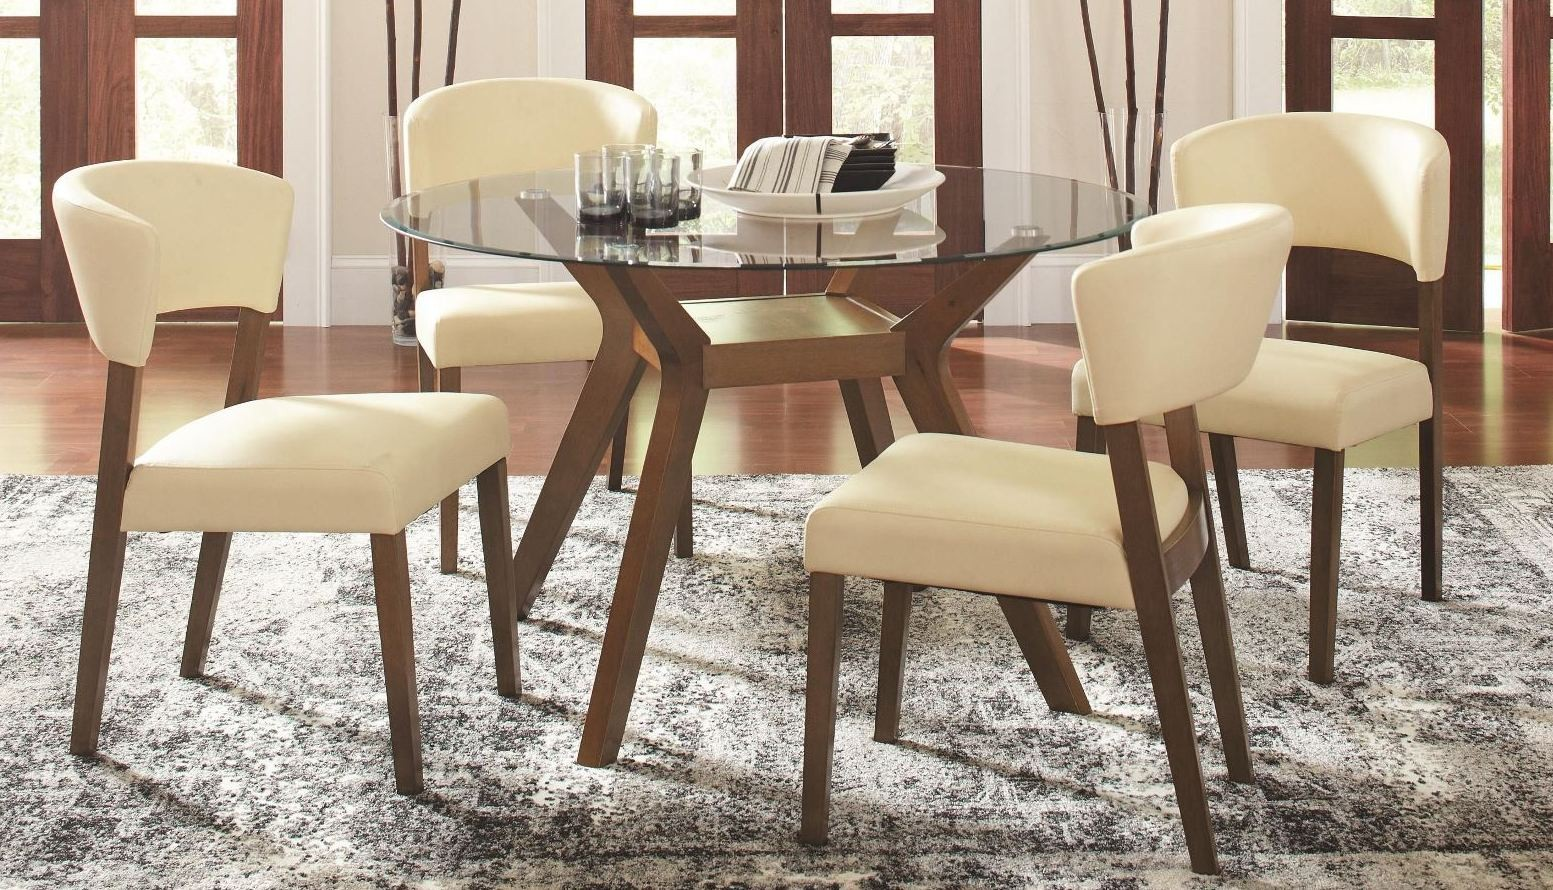 Paxton Round Glass Dining Room Set from Coaster 122180CB48RD  Coleman Furniture